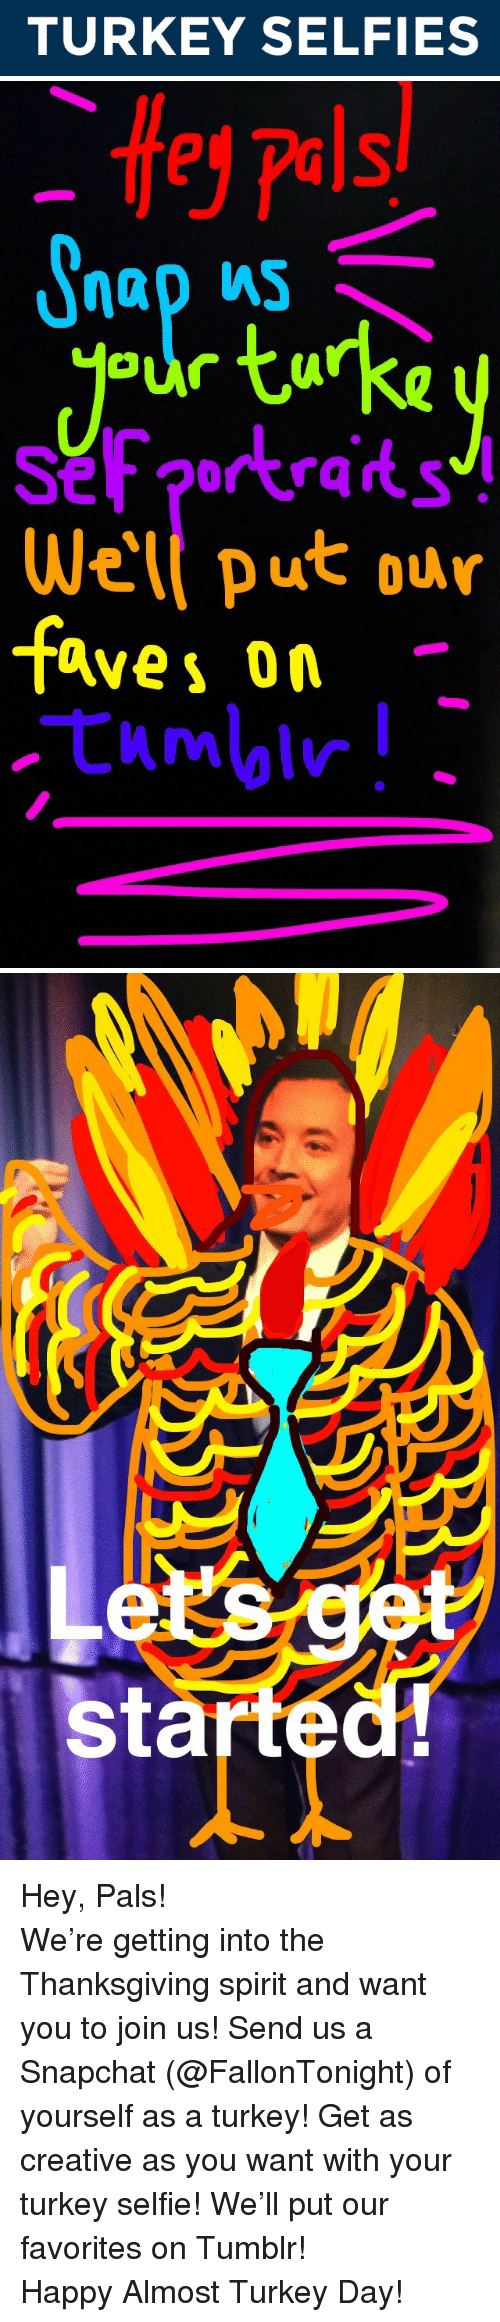 turkey day: TURKEY SELFIES   e  pels/  our tuka  rkraits  Wel put our  faves on.   es  started <p>Hey, Pals!</p> <p>We&rsquo;re getting into the Thanksgiving spirit and want you to join us! Send us a Snapchat (@FallonTonight) of yourself as a turkey! Get as creative as you want with your turkey selfie! We&rsquo;ll put our favorites on Tumblr!</p> <p>Happy Almost Turkey Day!</p>